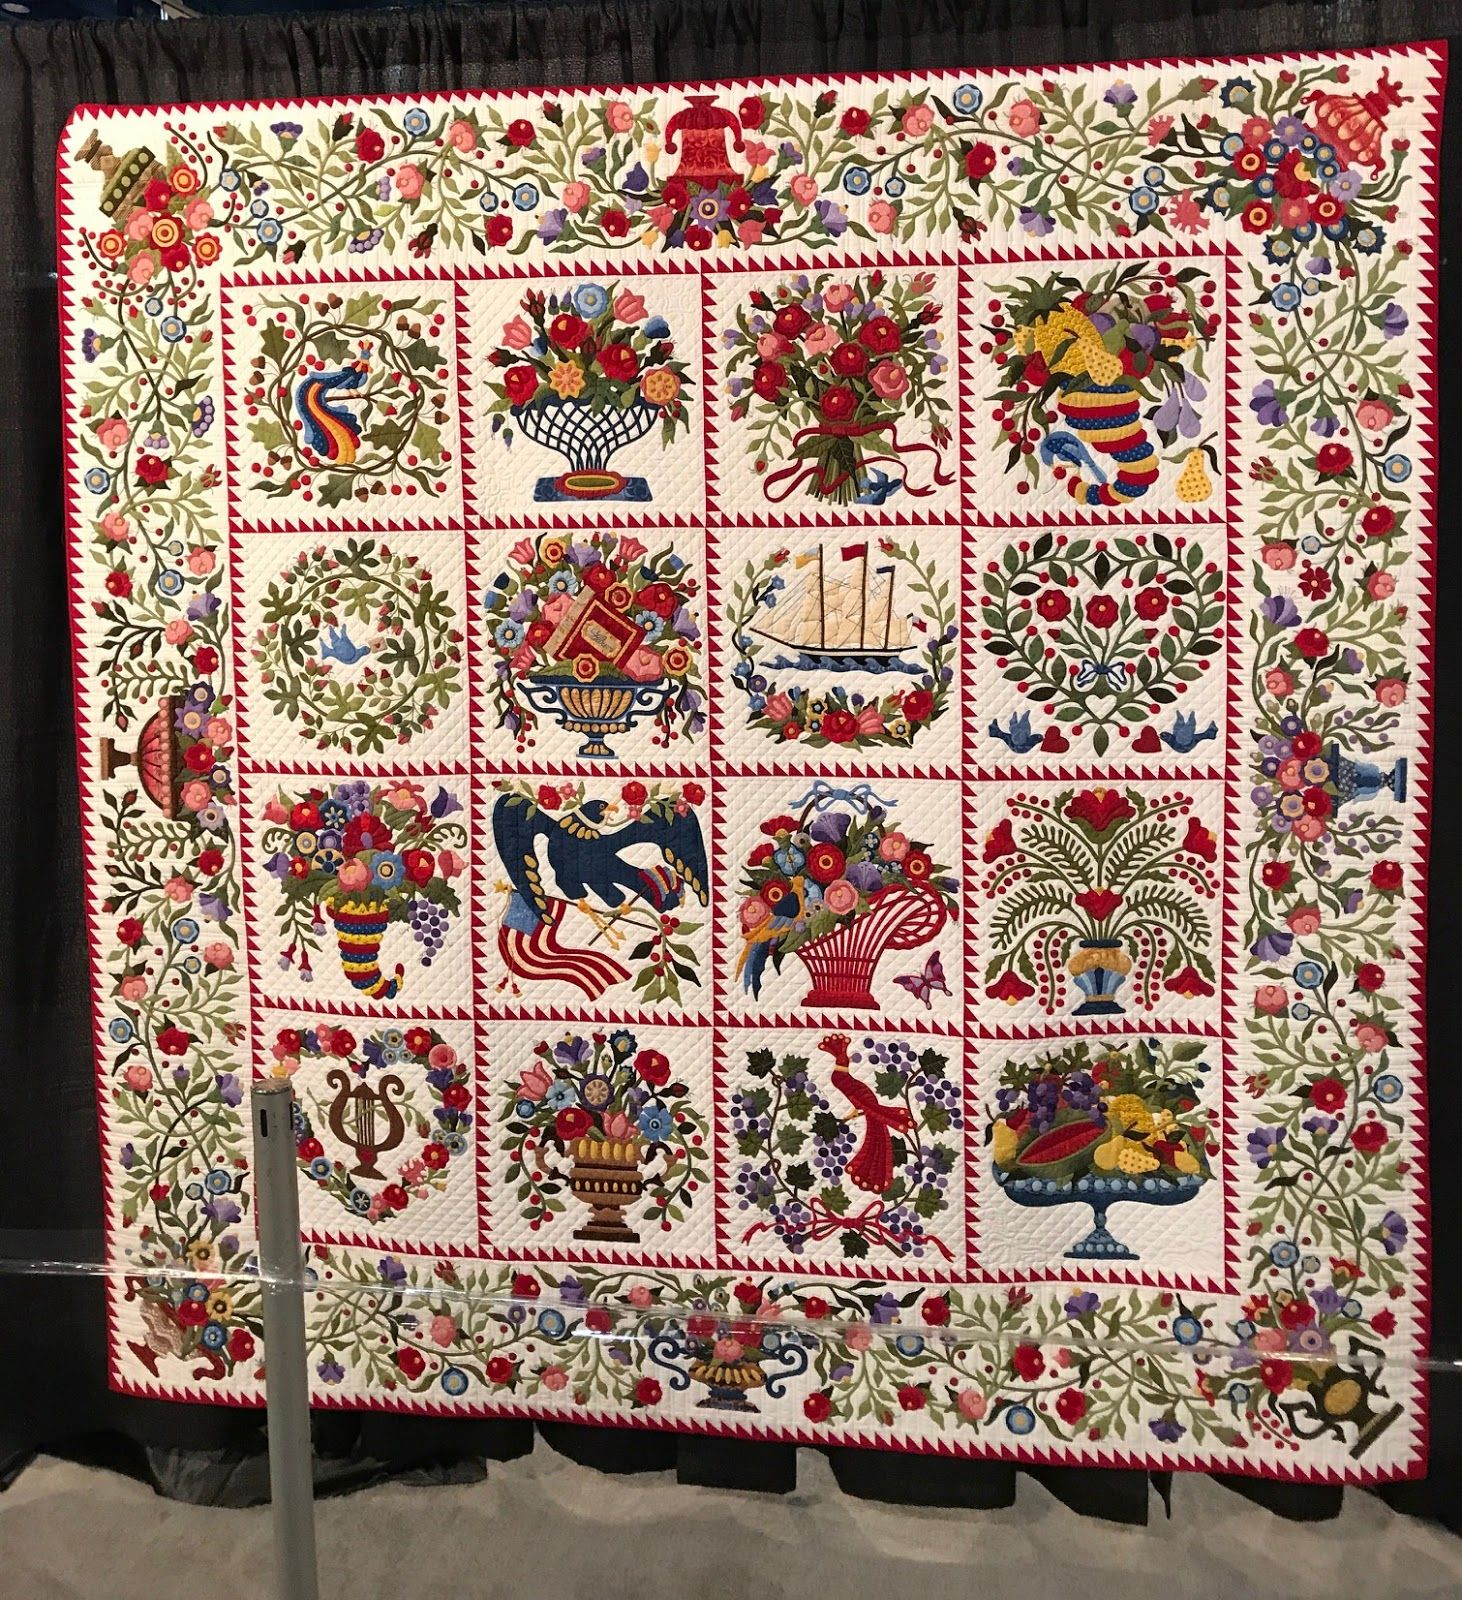 Humble Quilts | applique | Pinterest | Patchwork and Stitch : humble quilts - Adamdwight.com